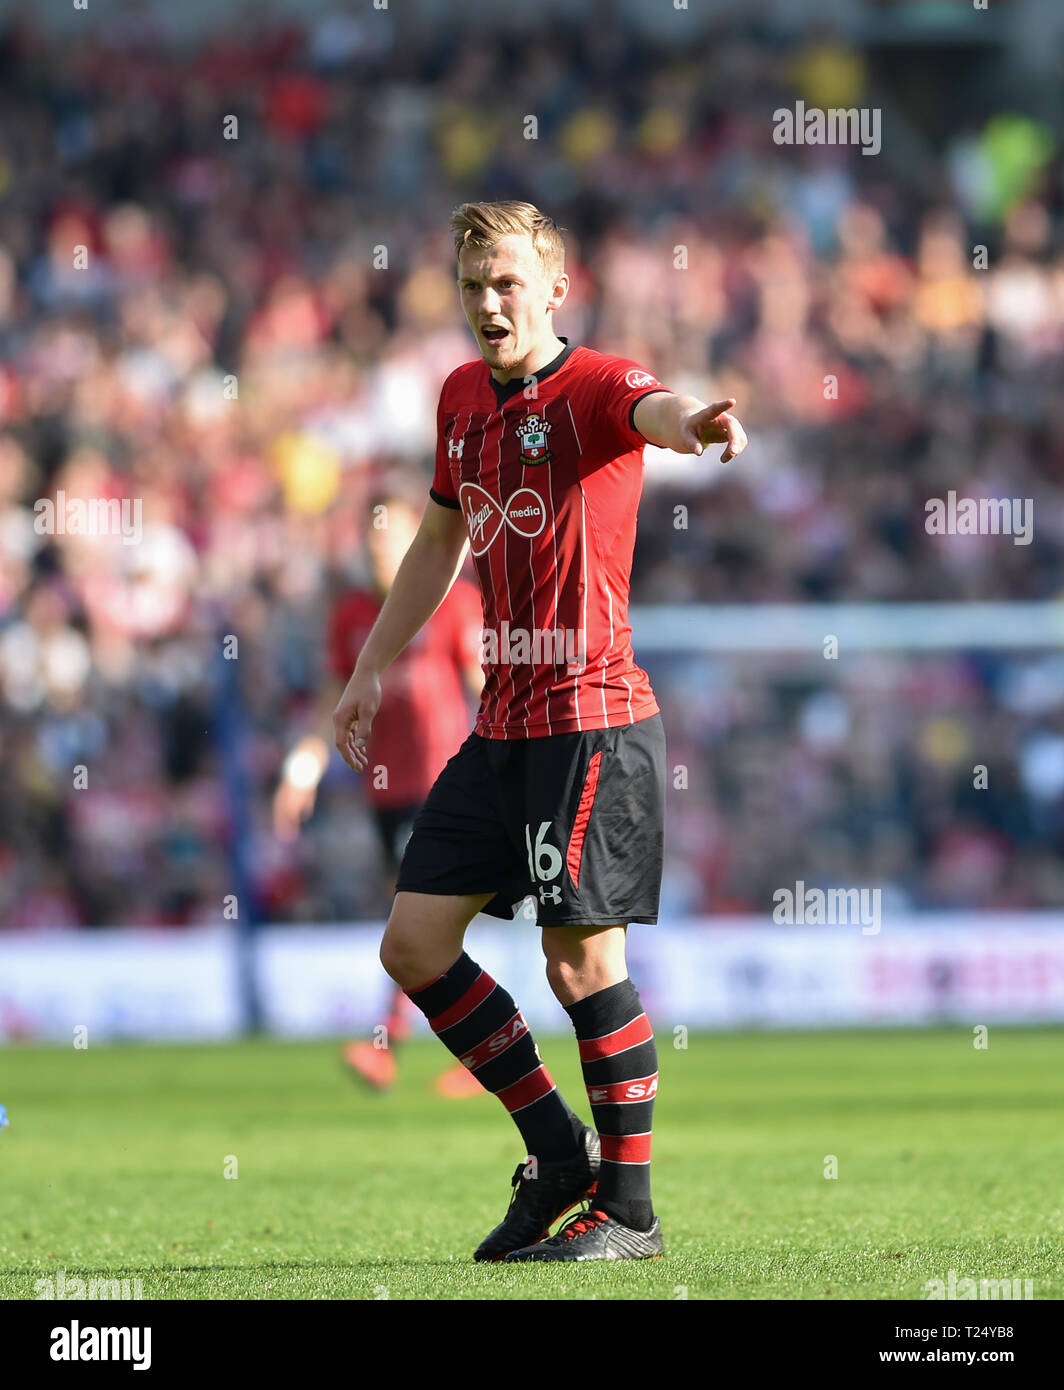 James Ward-Prowse of Southampton during the Premier League match between Brighton & Hove Albion and Southampton at The American Express Community Stadium . 30 March 2019 Editorial use only. No merchandising. For Football images FA and Premier League restrictions apply inc. no internet/mobile usage without FAPL license - for details contact Football Dataco Stock Photo